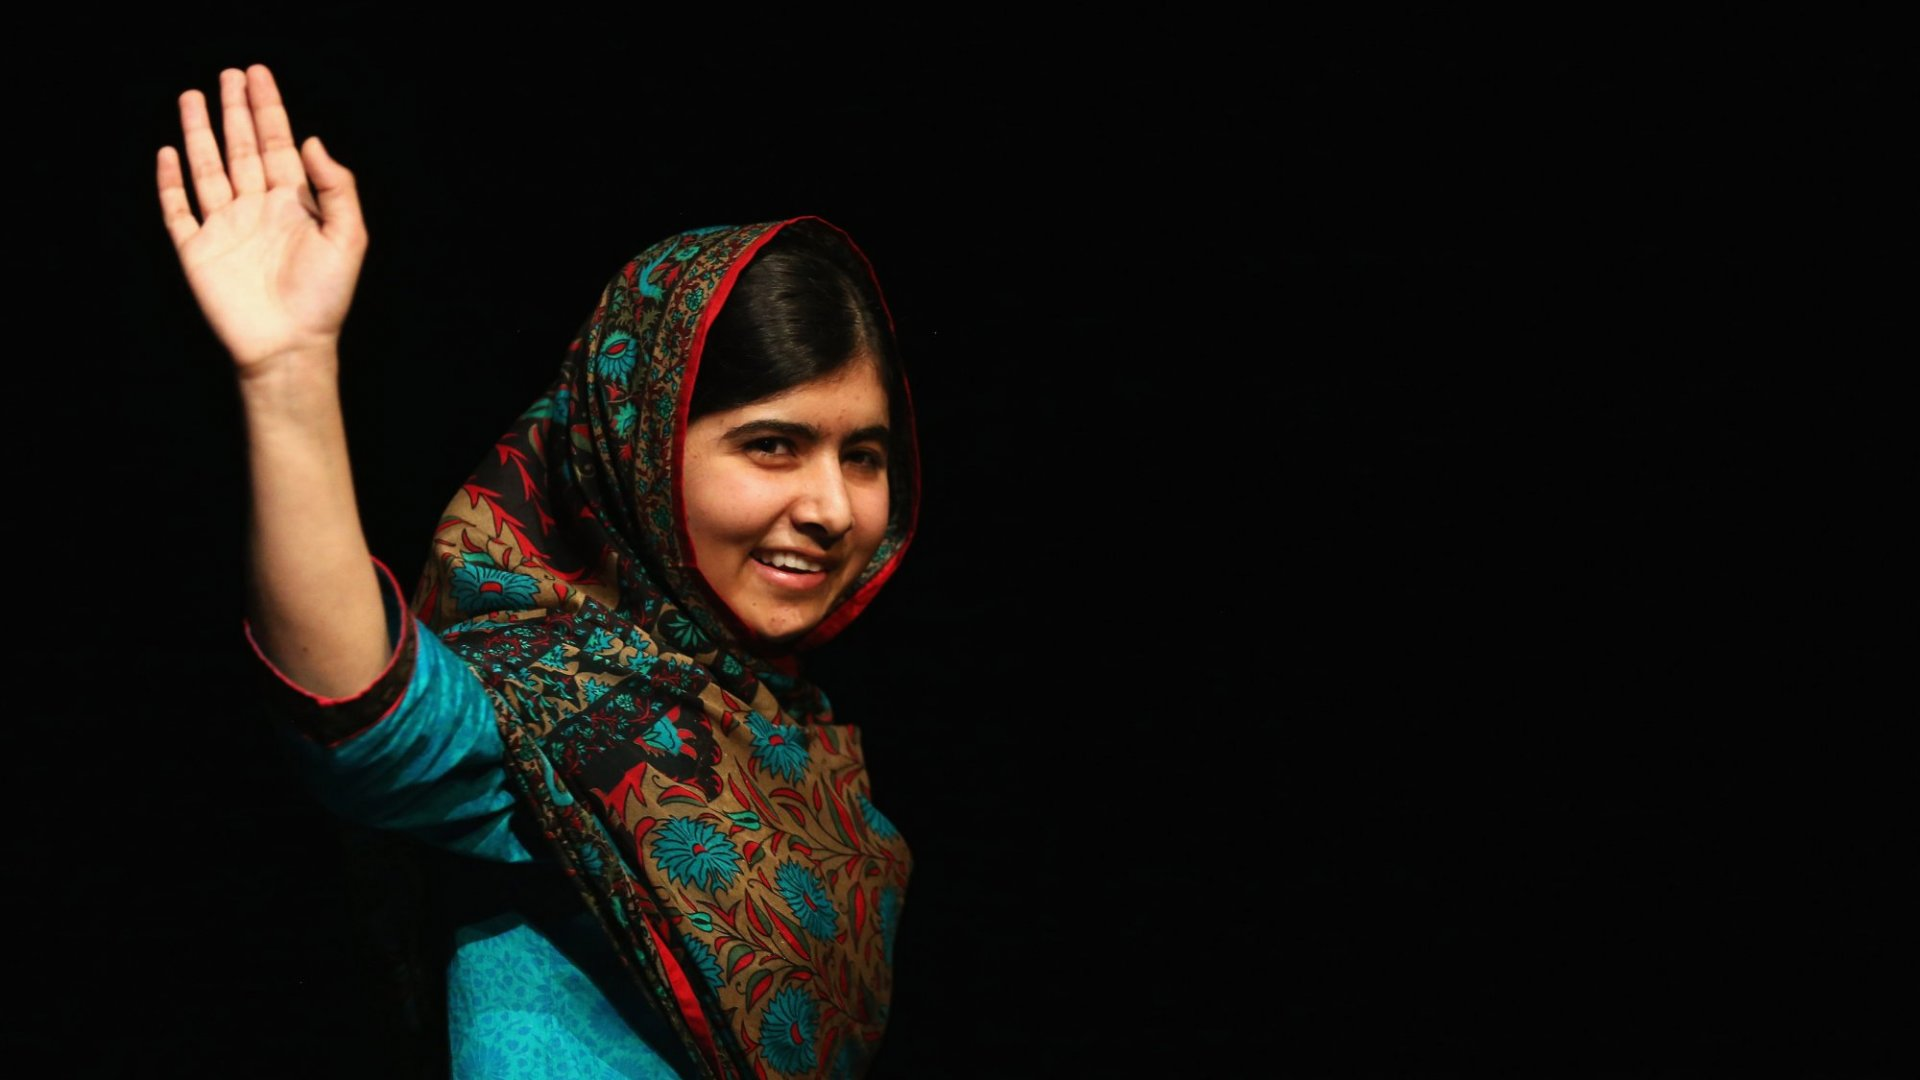 Tim Cook Wants to Help Nobel Peace Prize Winner Malala Yousafzai Offer Education to Underprivileged Girls